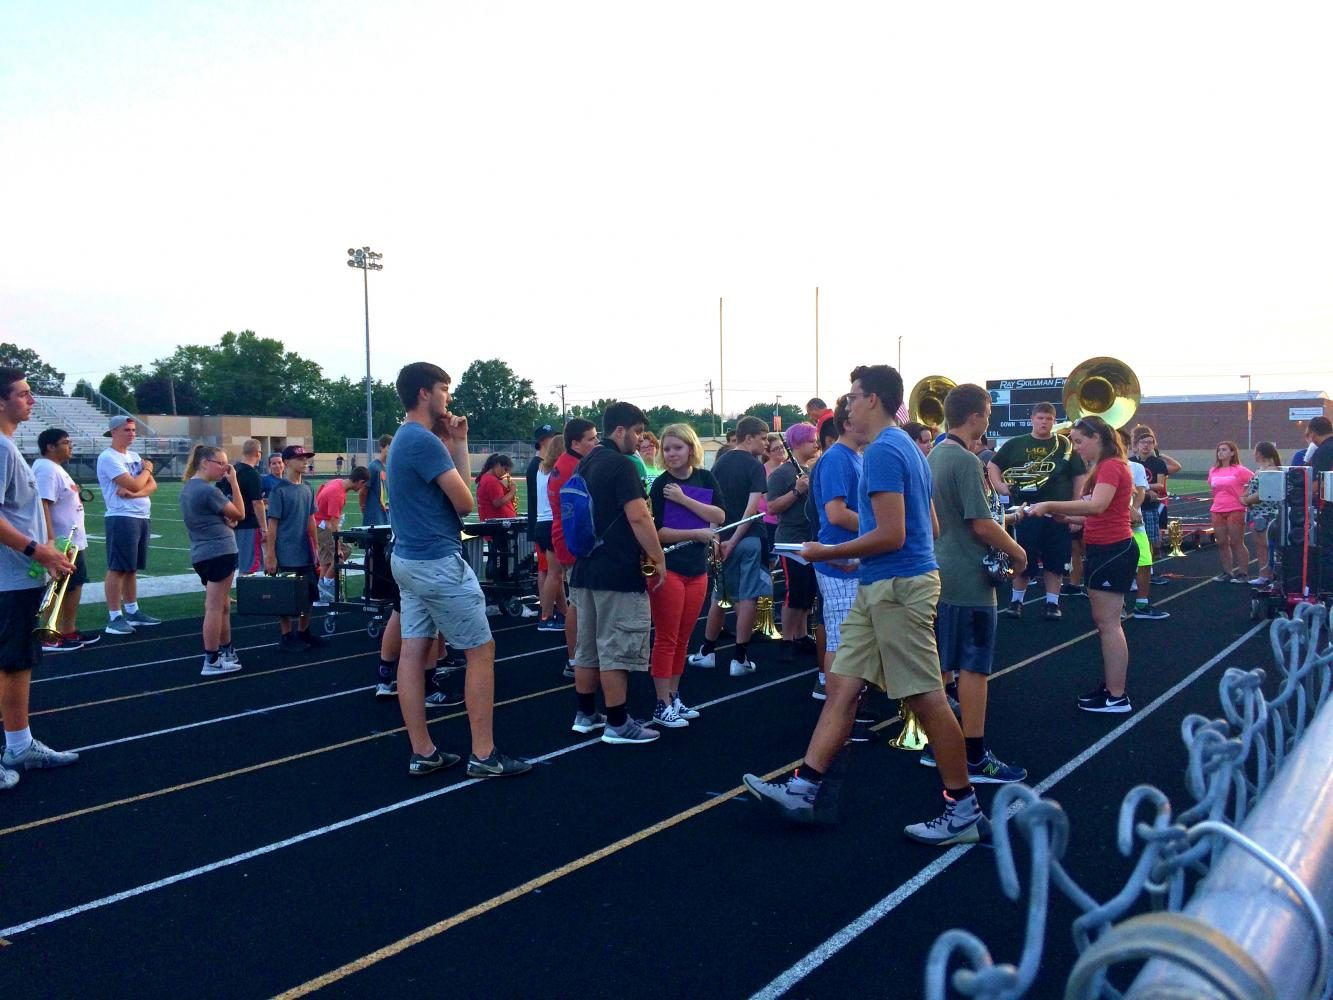 The marching band gathers at the end of rehearsal to talk about fundraising on Thursday, Aug 3.